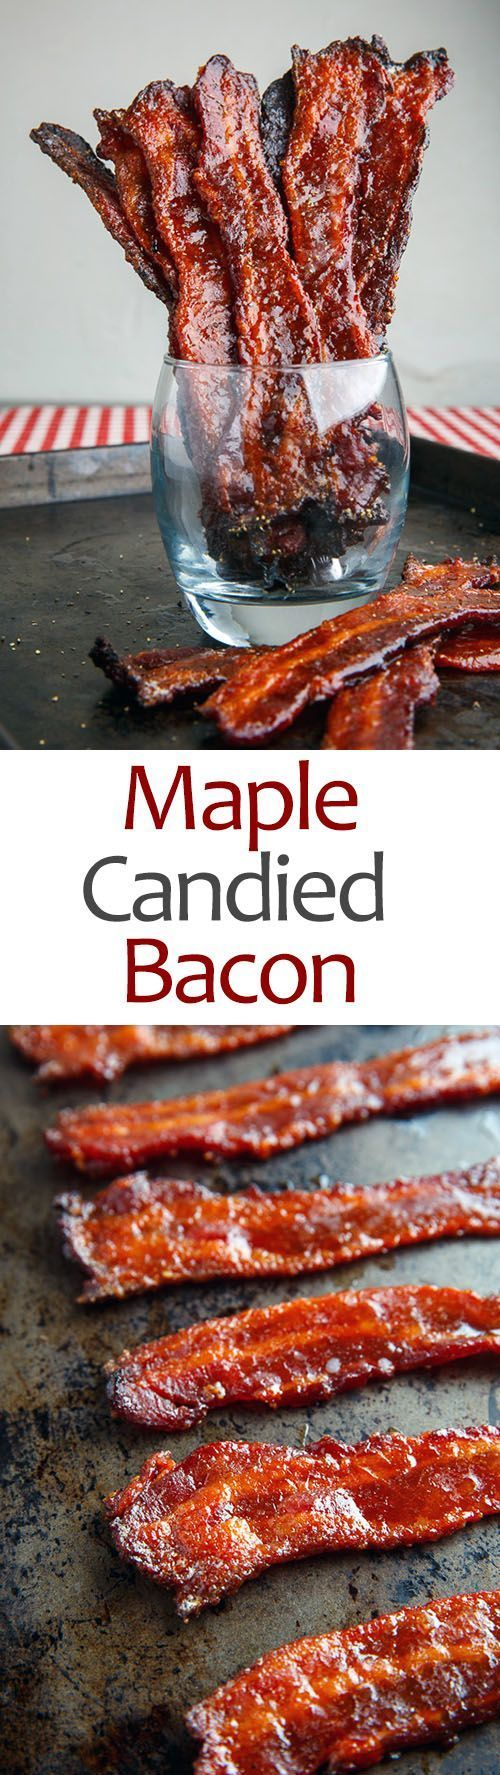 Maple Candied Bacon Recipe    Crispy maple and brown sugar candied bacon that is the perfect co